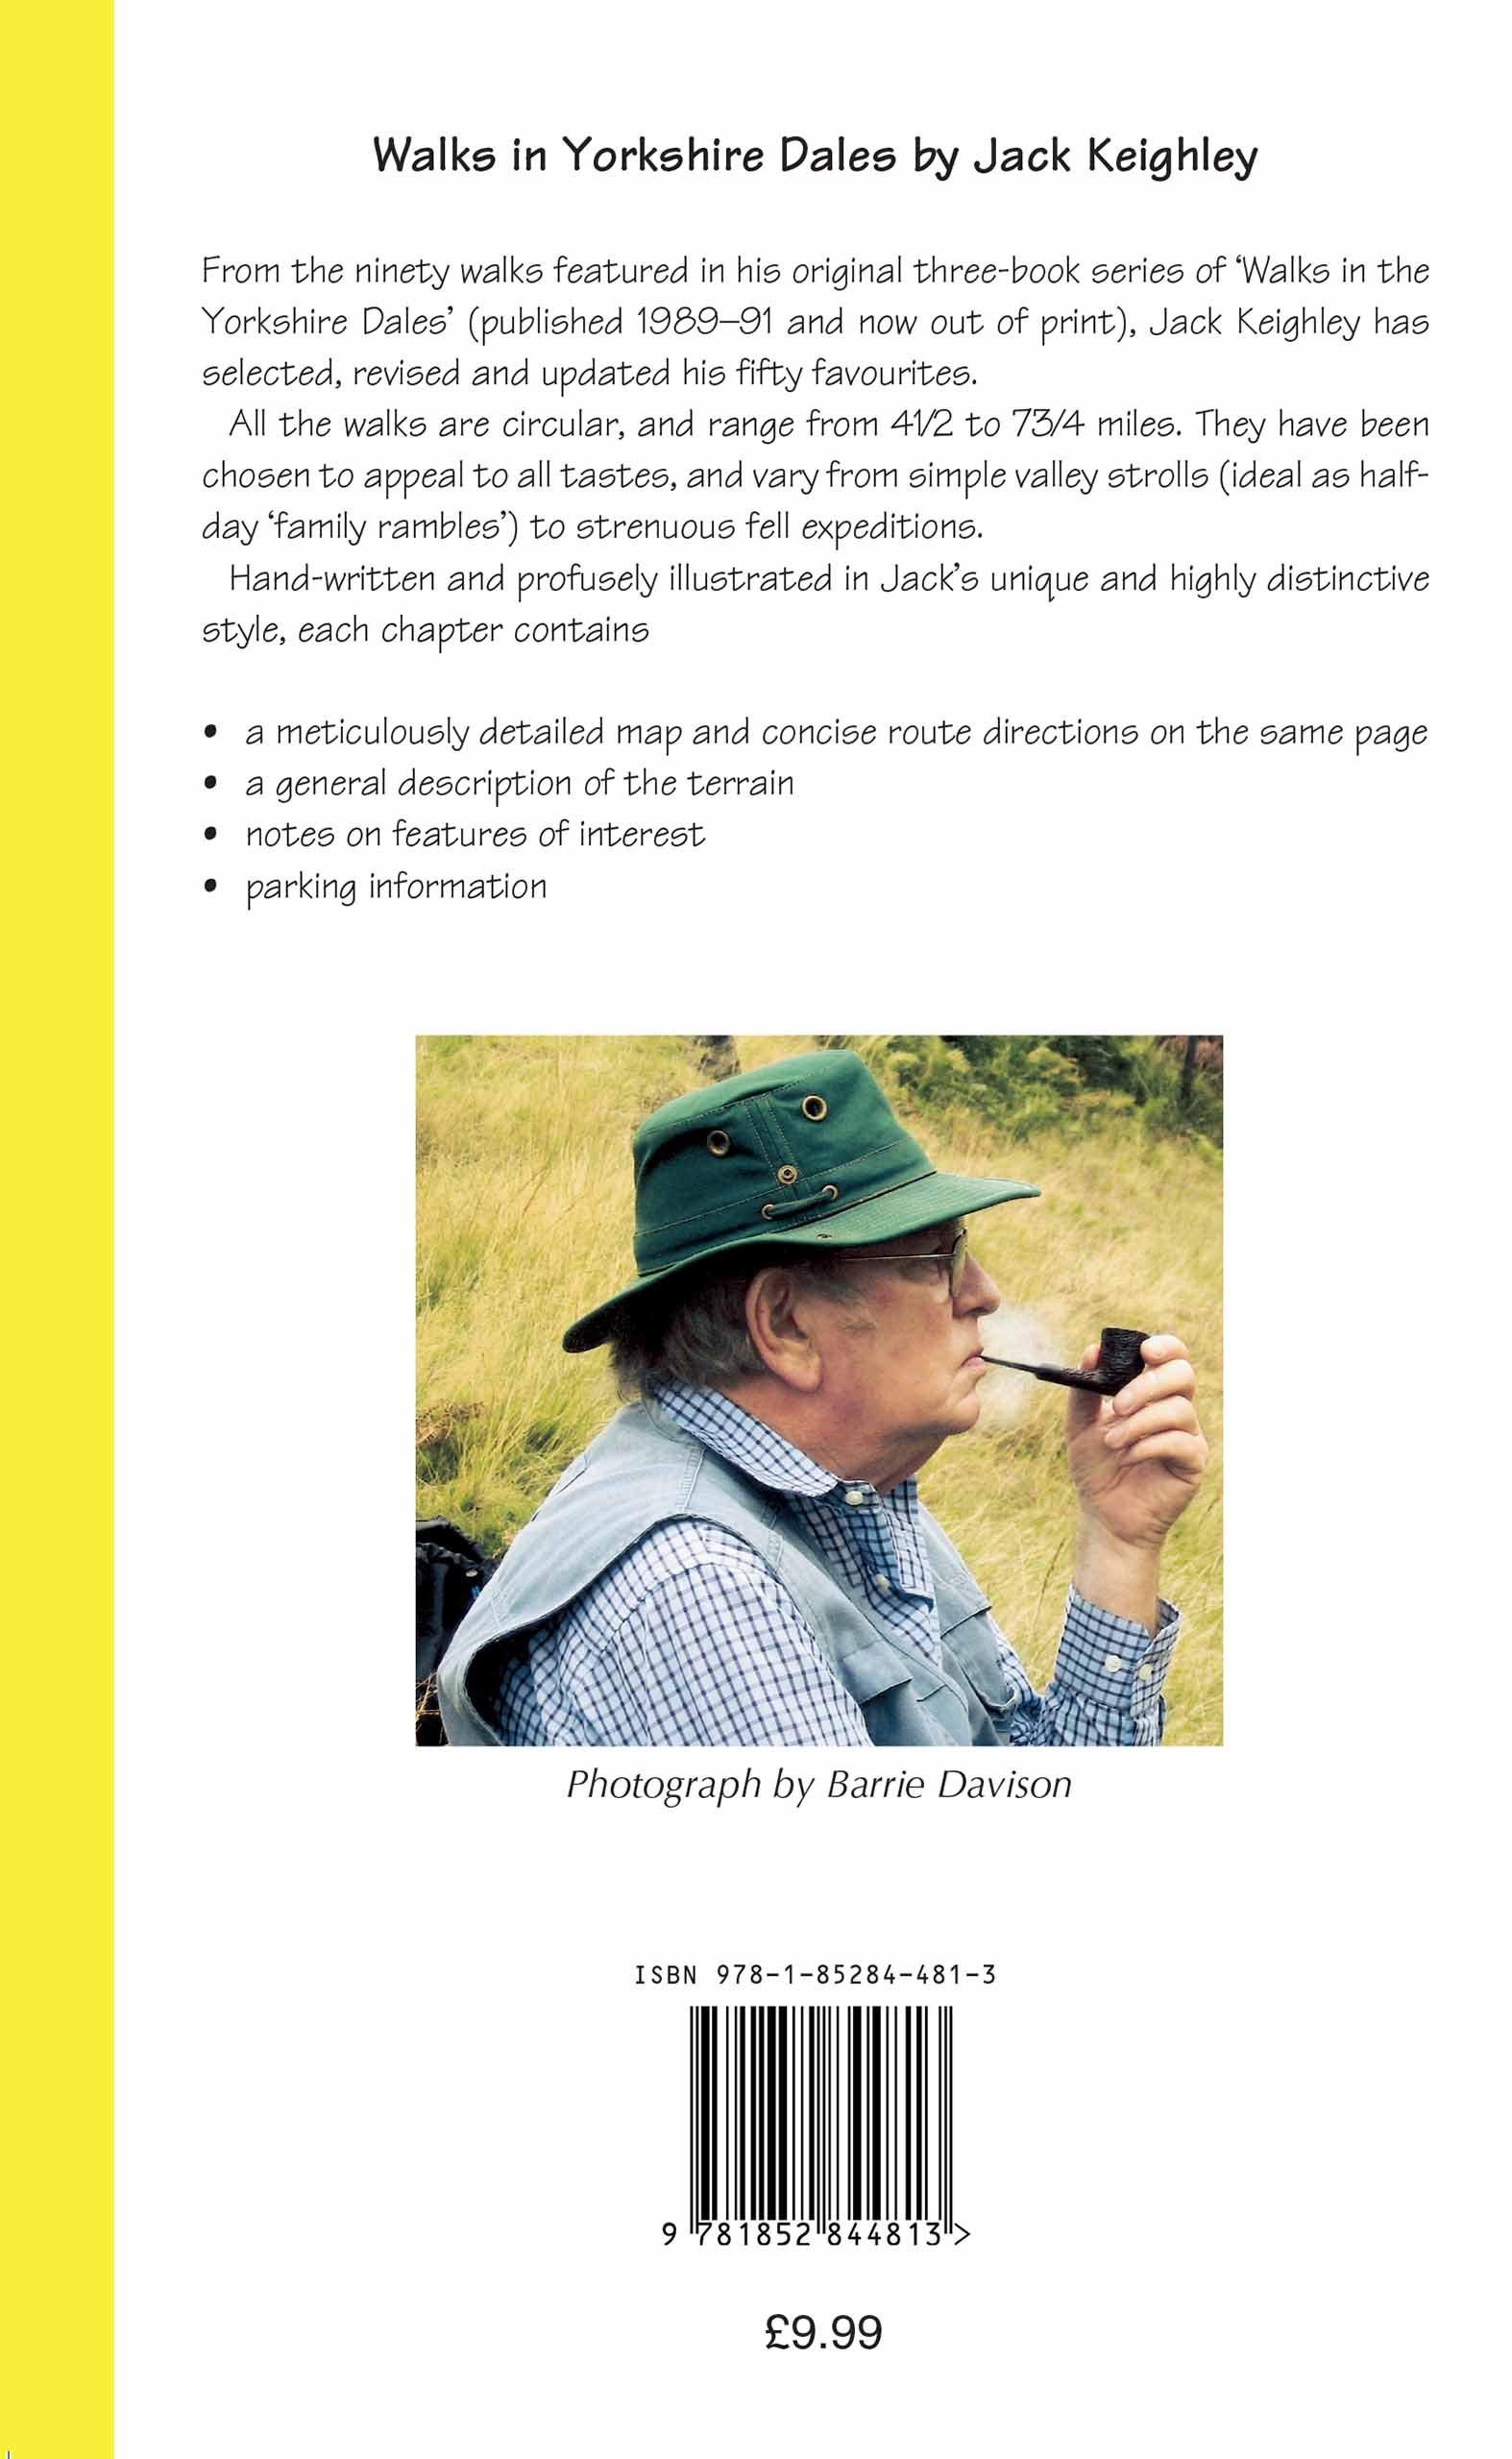 Walks in the yorkshire dales jack keighleys 50 favourite routes walks in the yorkshire dales jack keighleys 50 favourite routes amazon jack keighley 9781852844813 books fandeluxe Image collections